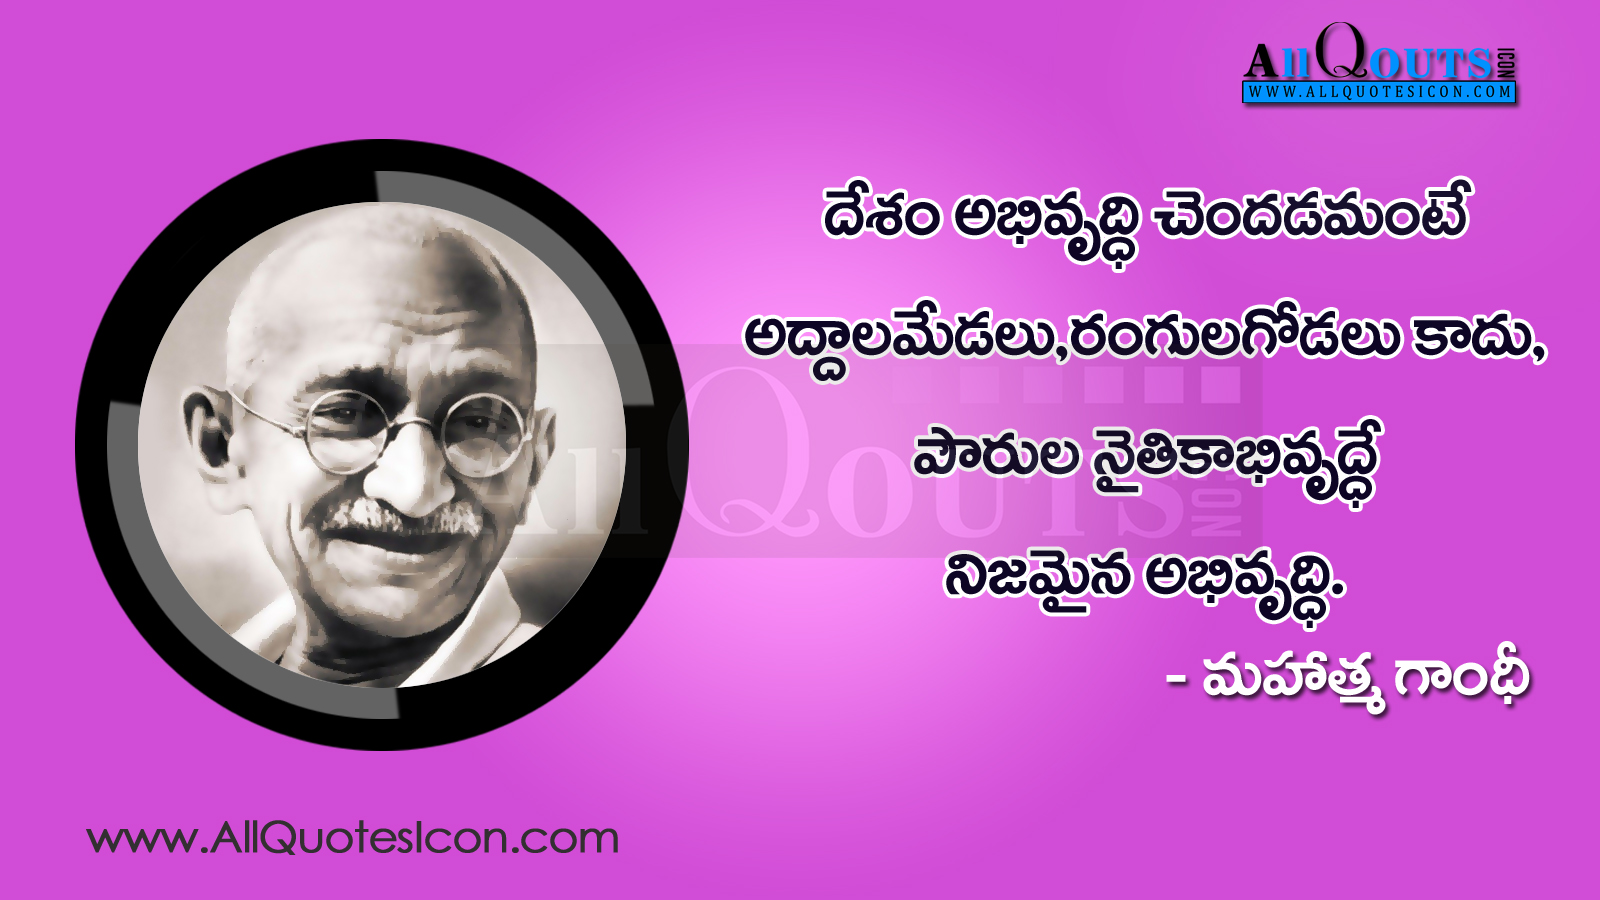 telugu quotations and hd wallpapers mahatma gandhi quotes images